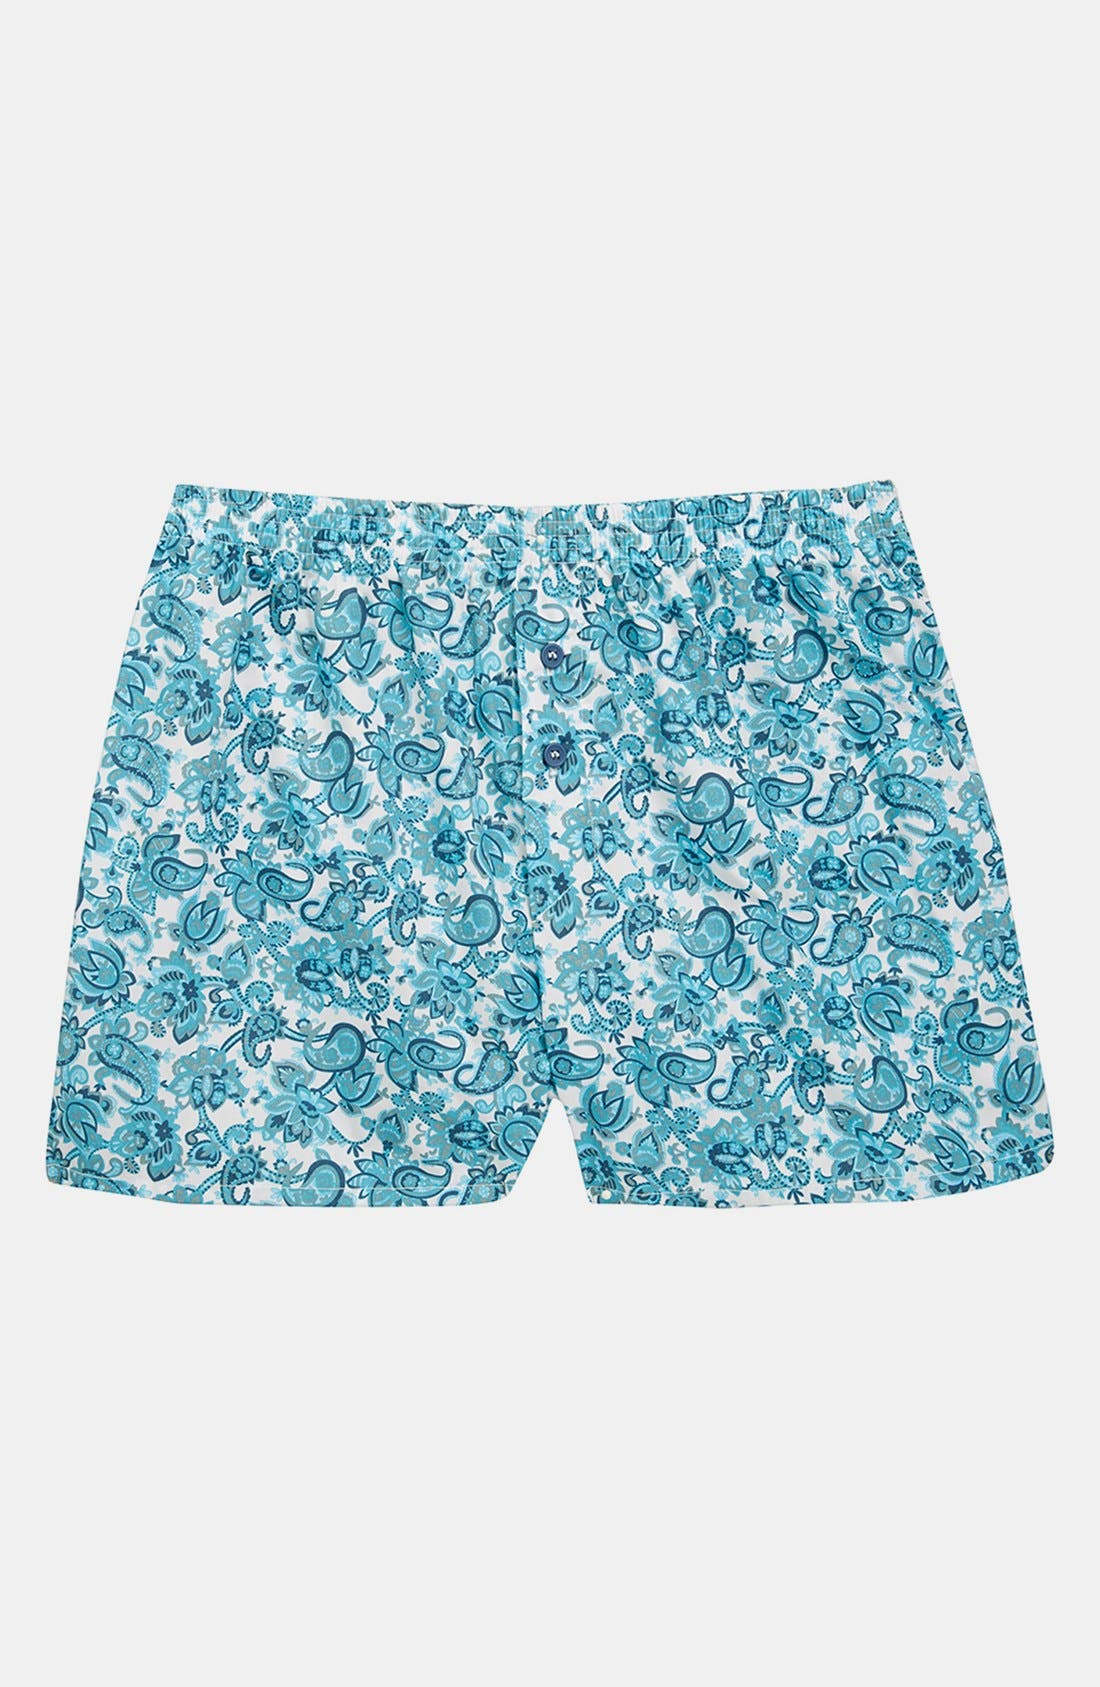 Alternate Image 1 Selected - Topman Paisley Boxers